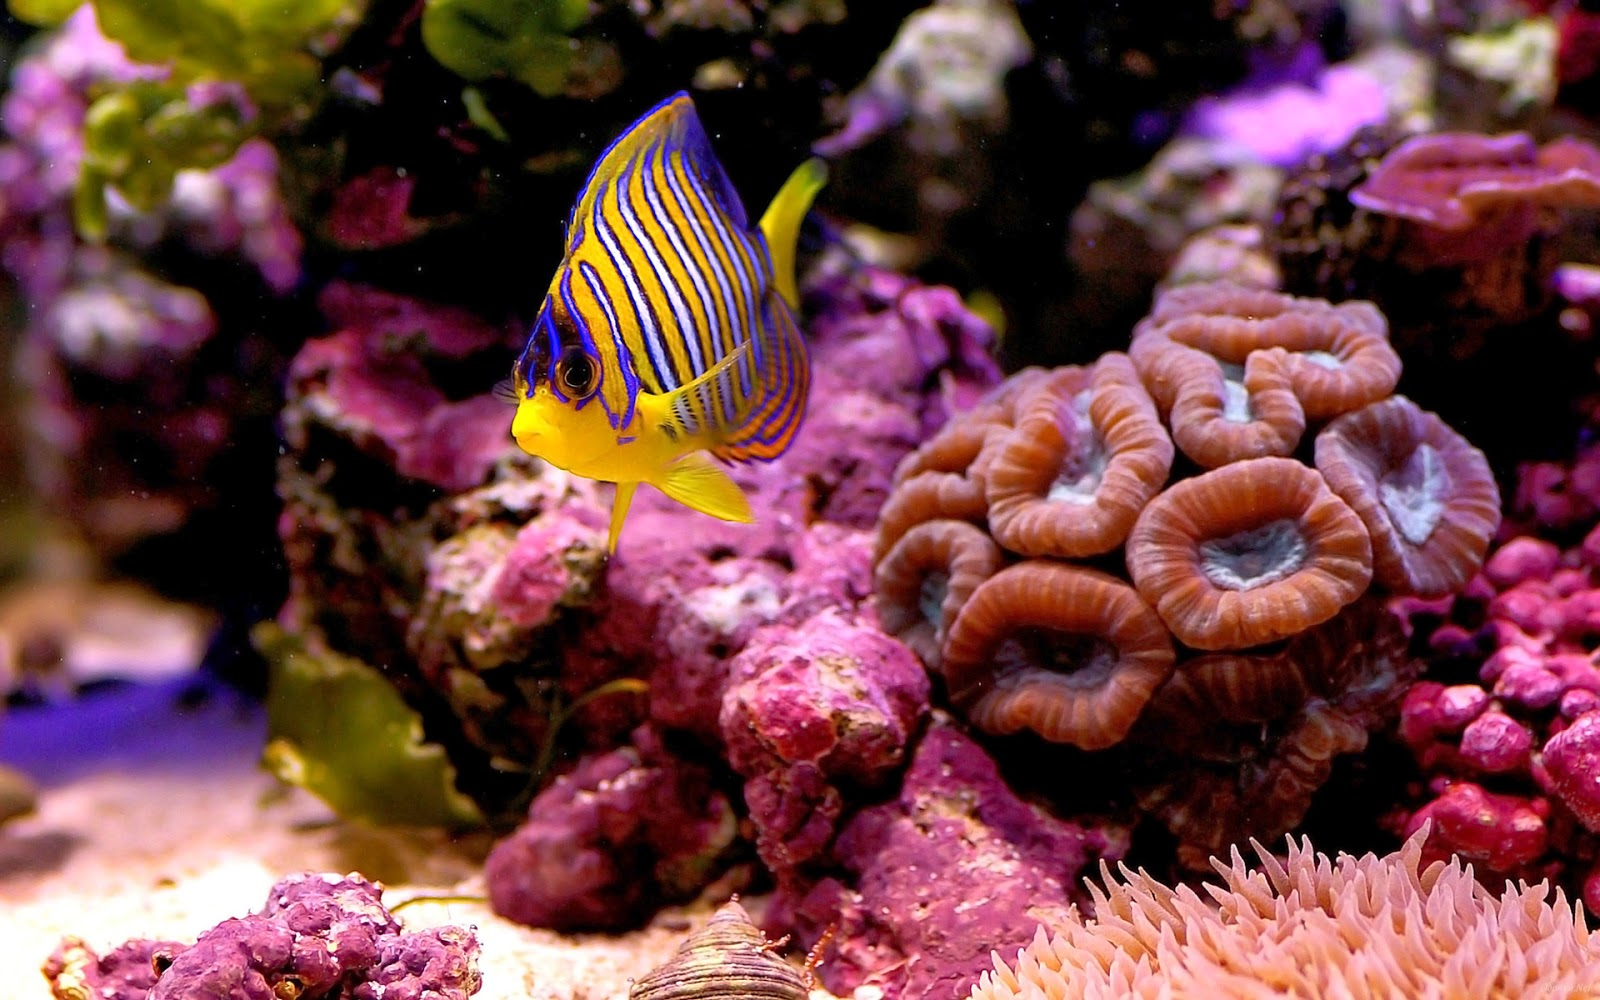 undersea-fish-pictures-with-colorful-coral-reef.jpg